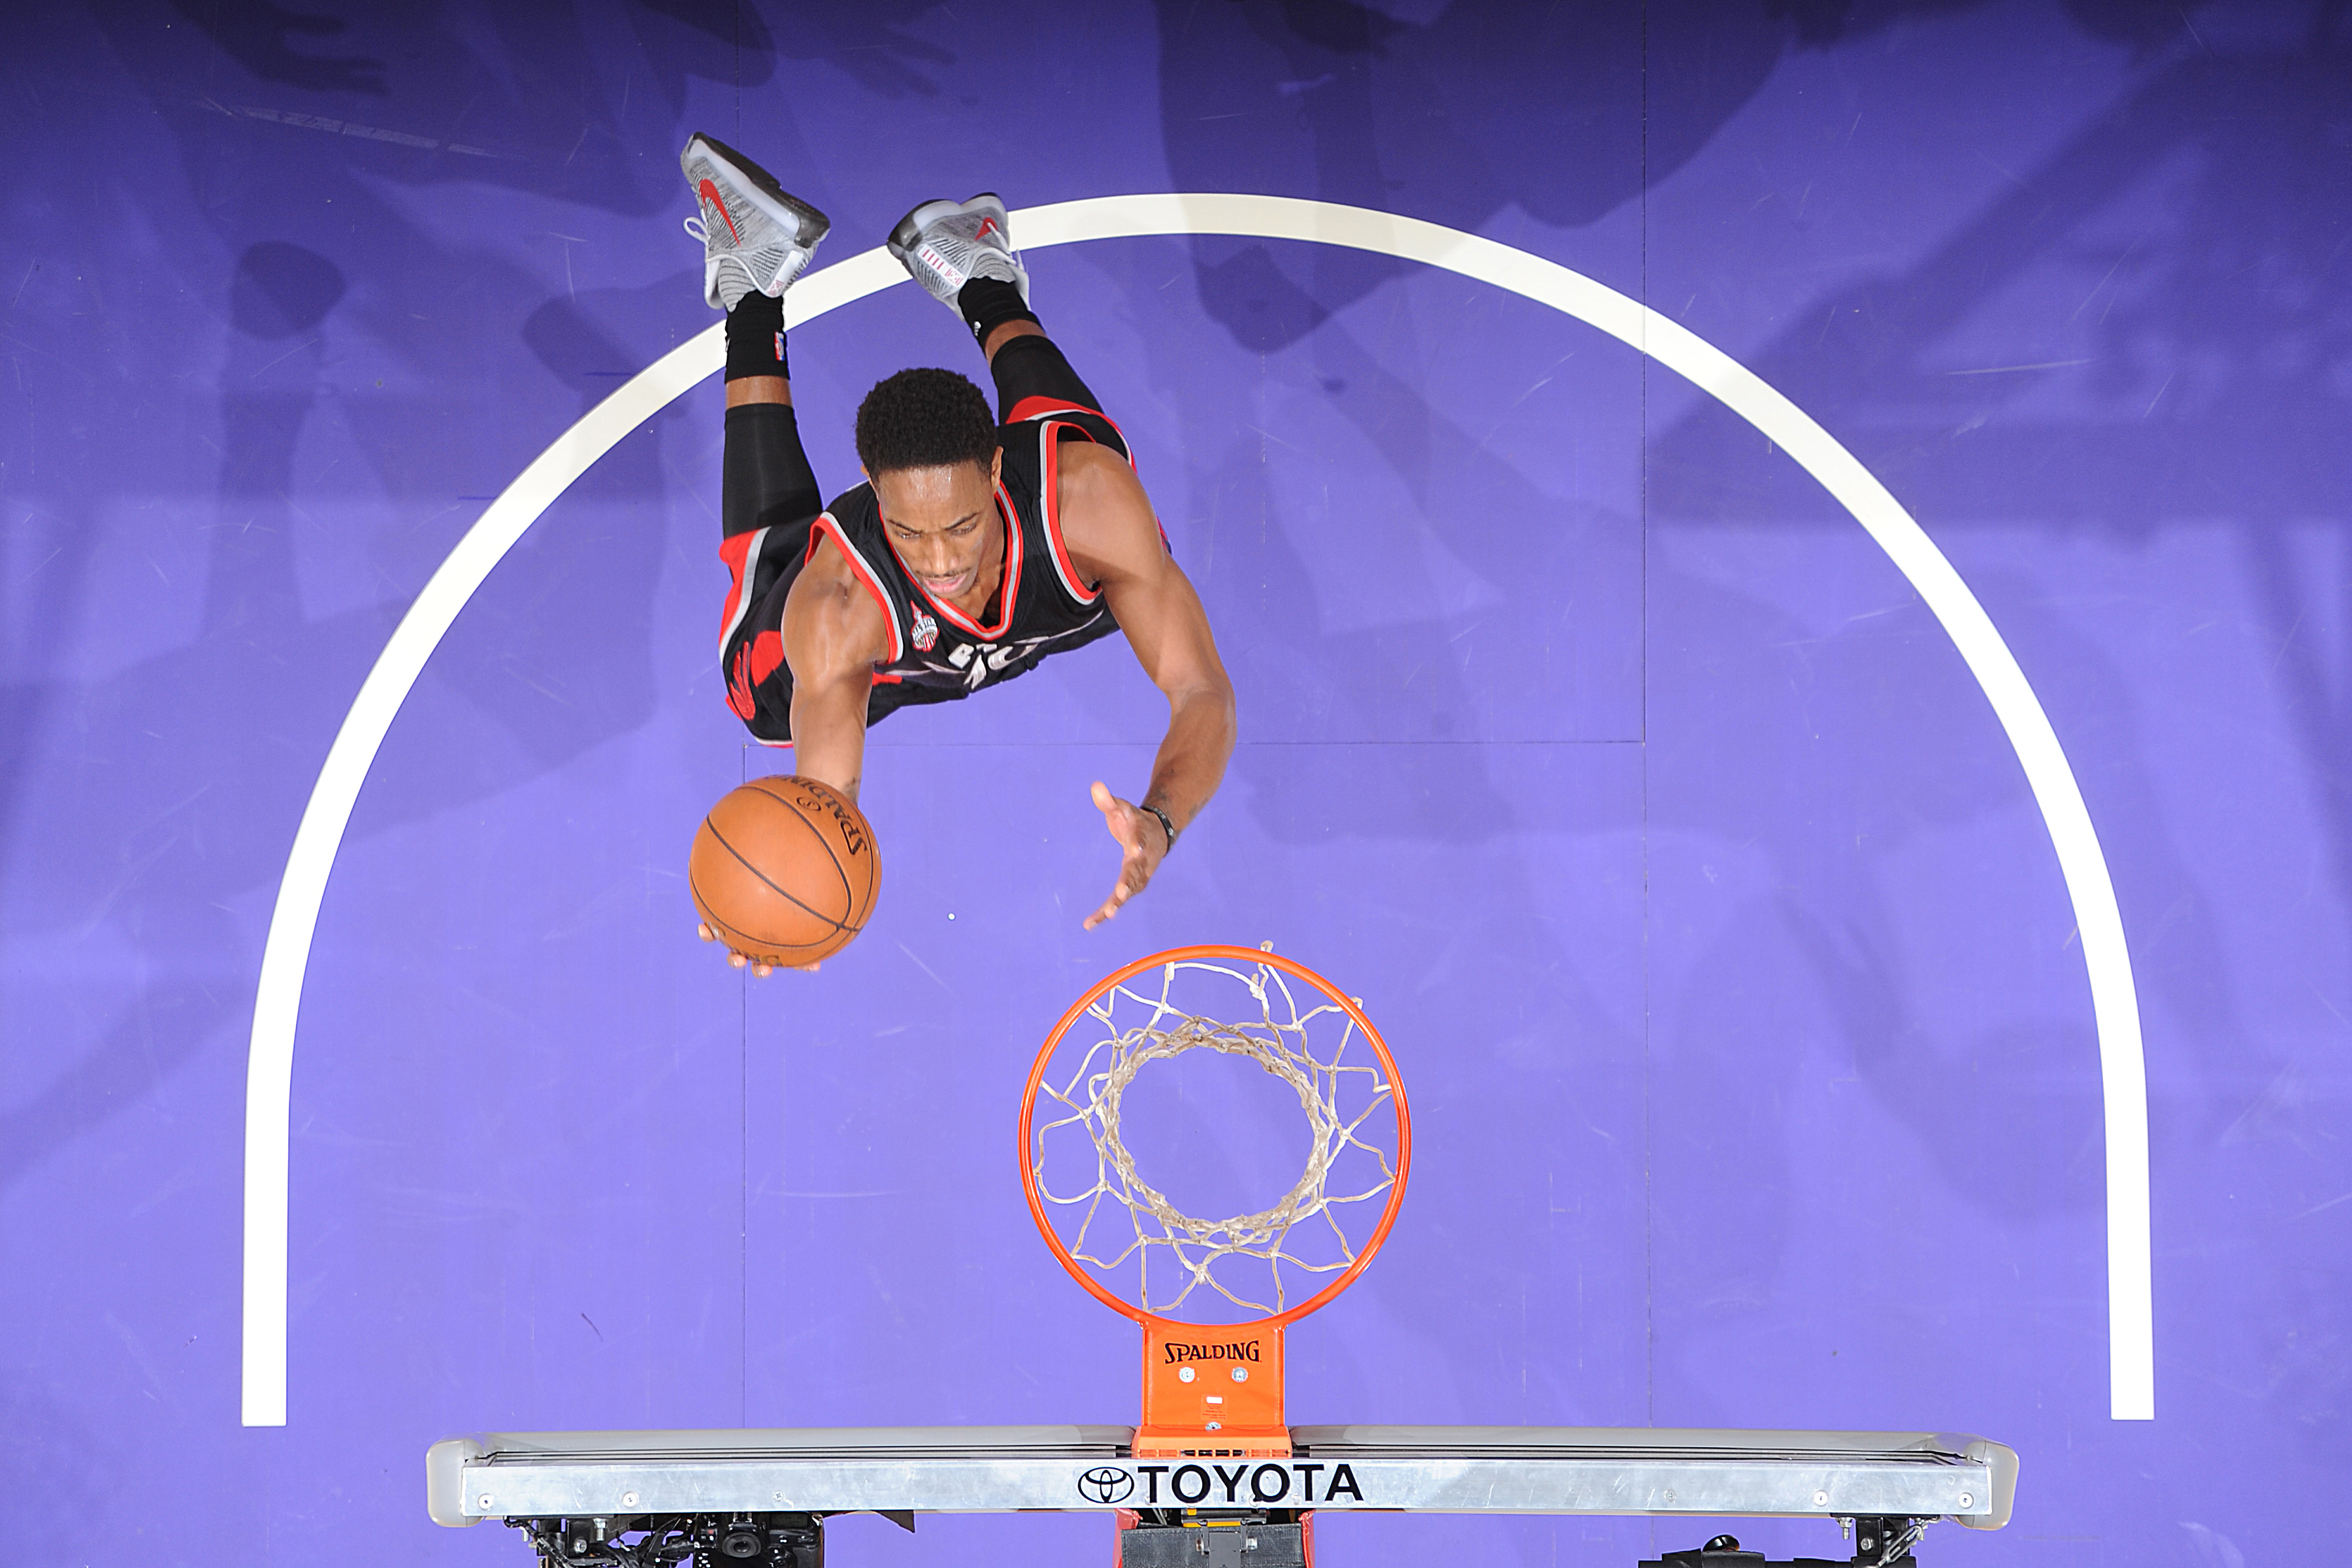 DeMar DeRozan #10 of the Toronto Raptors shoots the ball against the Los Angeles Lakers on November 20, 2015 at STAPLES Center in Los Angeles, California.